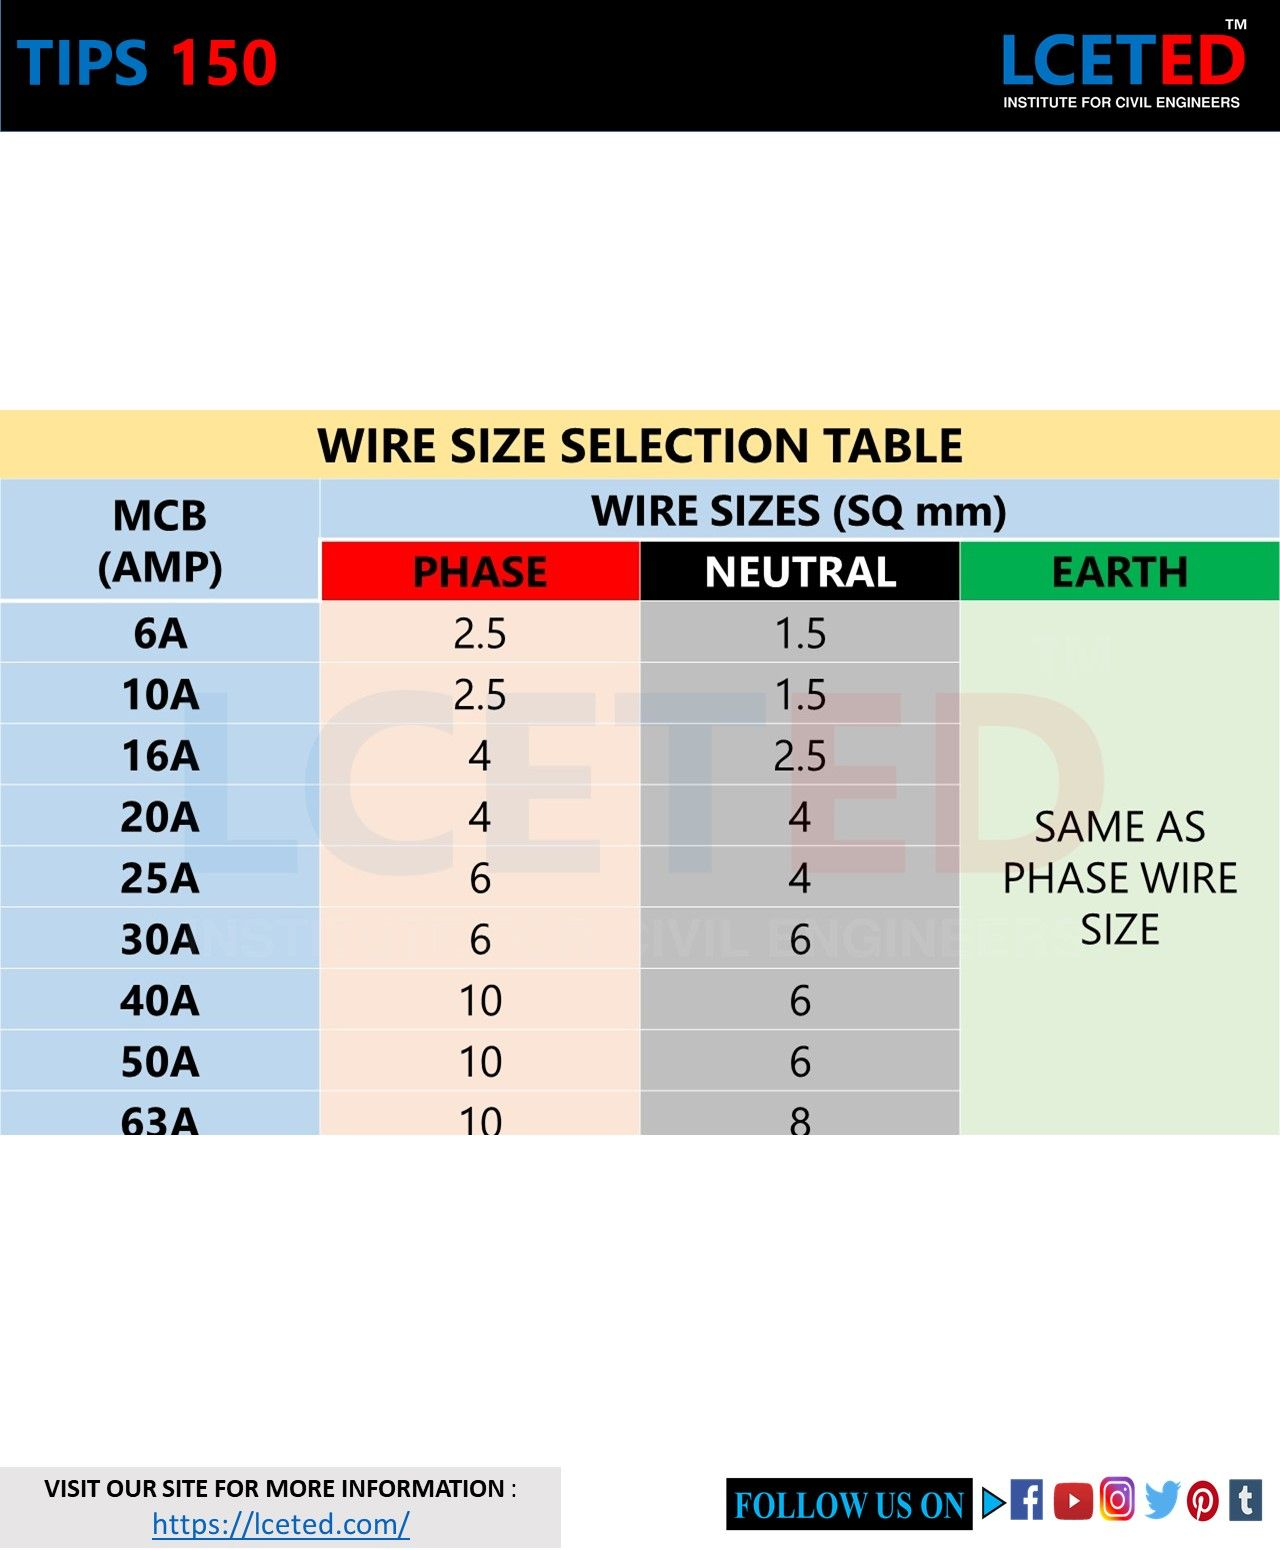 Tips 150 Wire Size Selection Table In 2020 Civil Engineering Nursing Student Tips Solar Energy Business